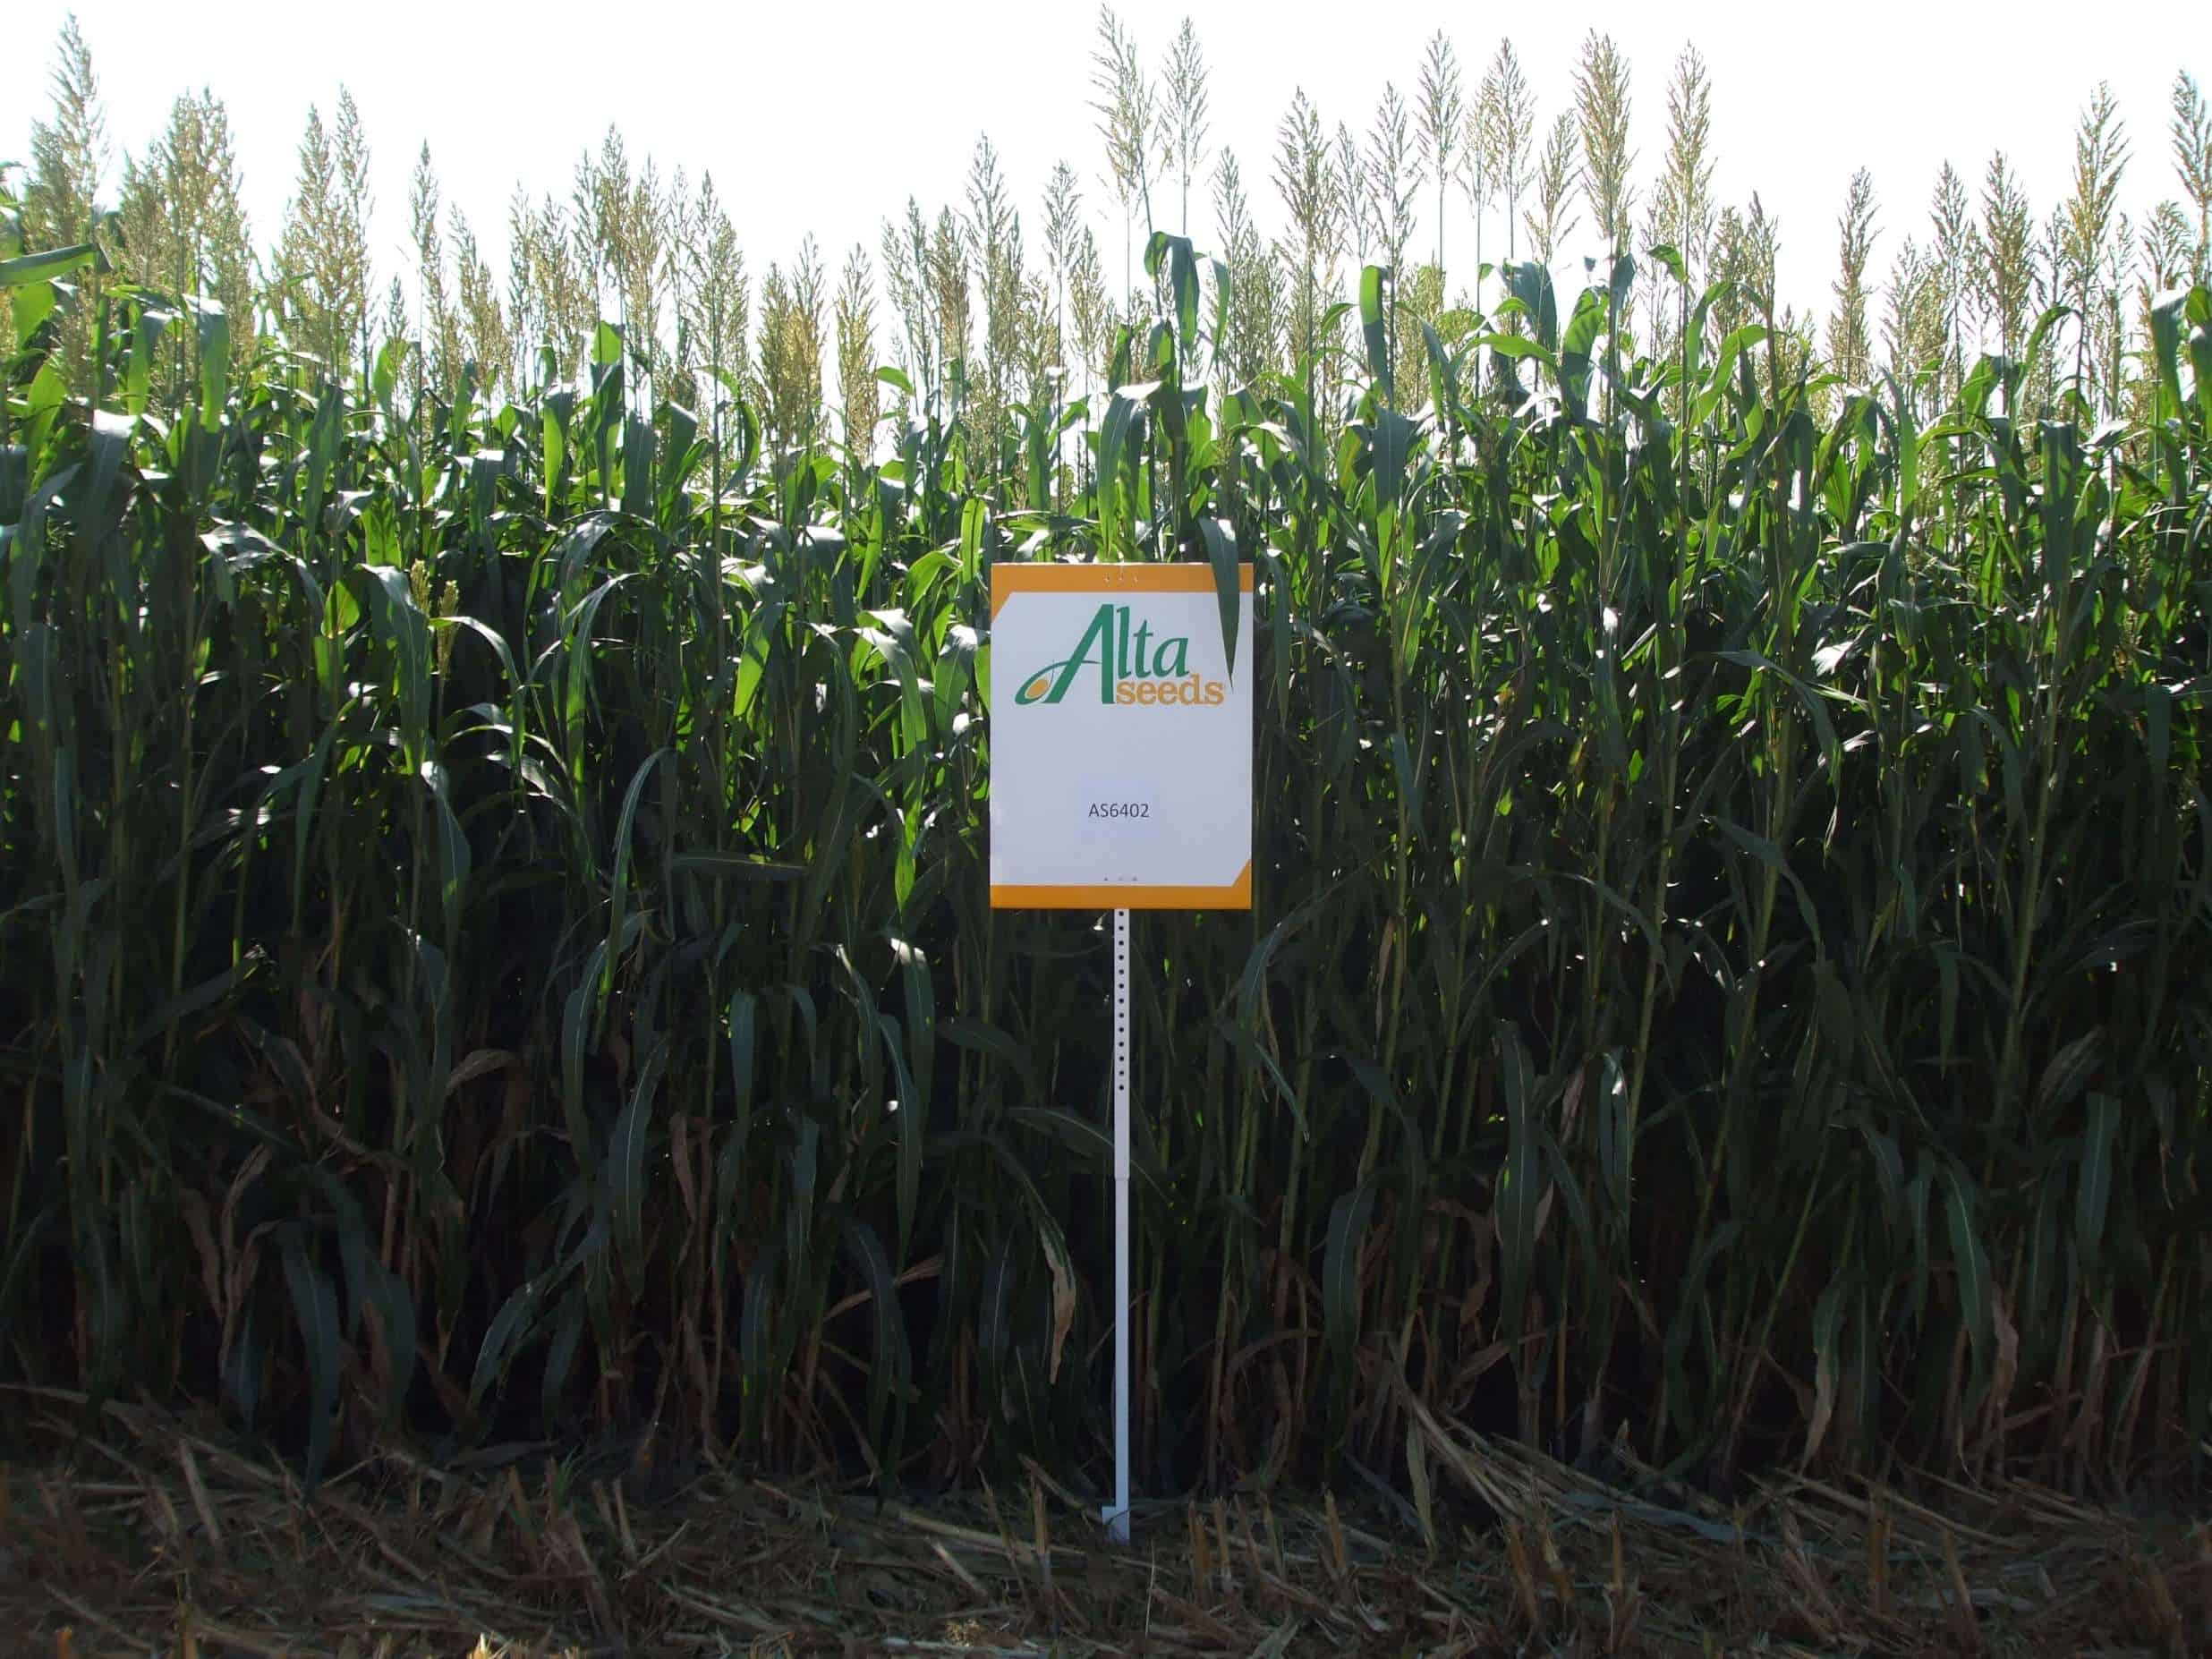 Sign next to seed crops